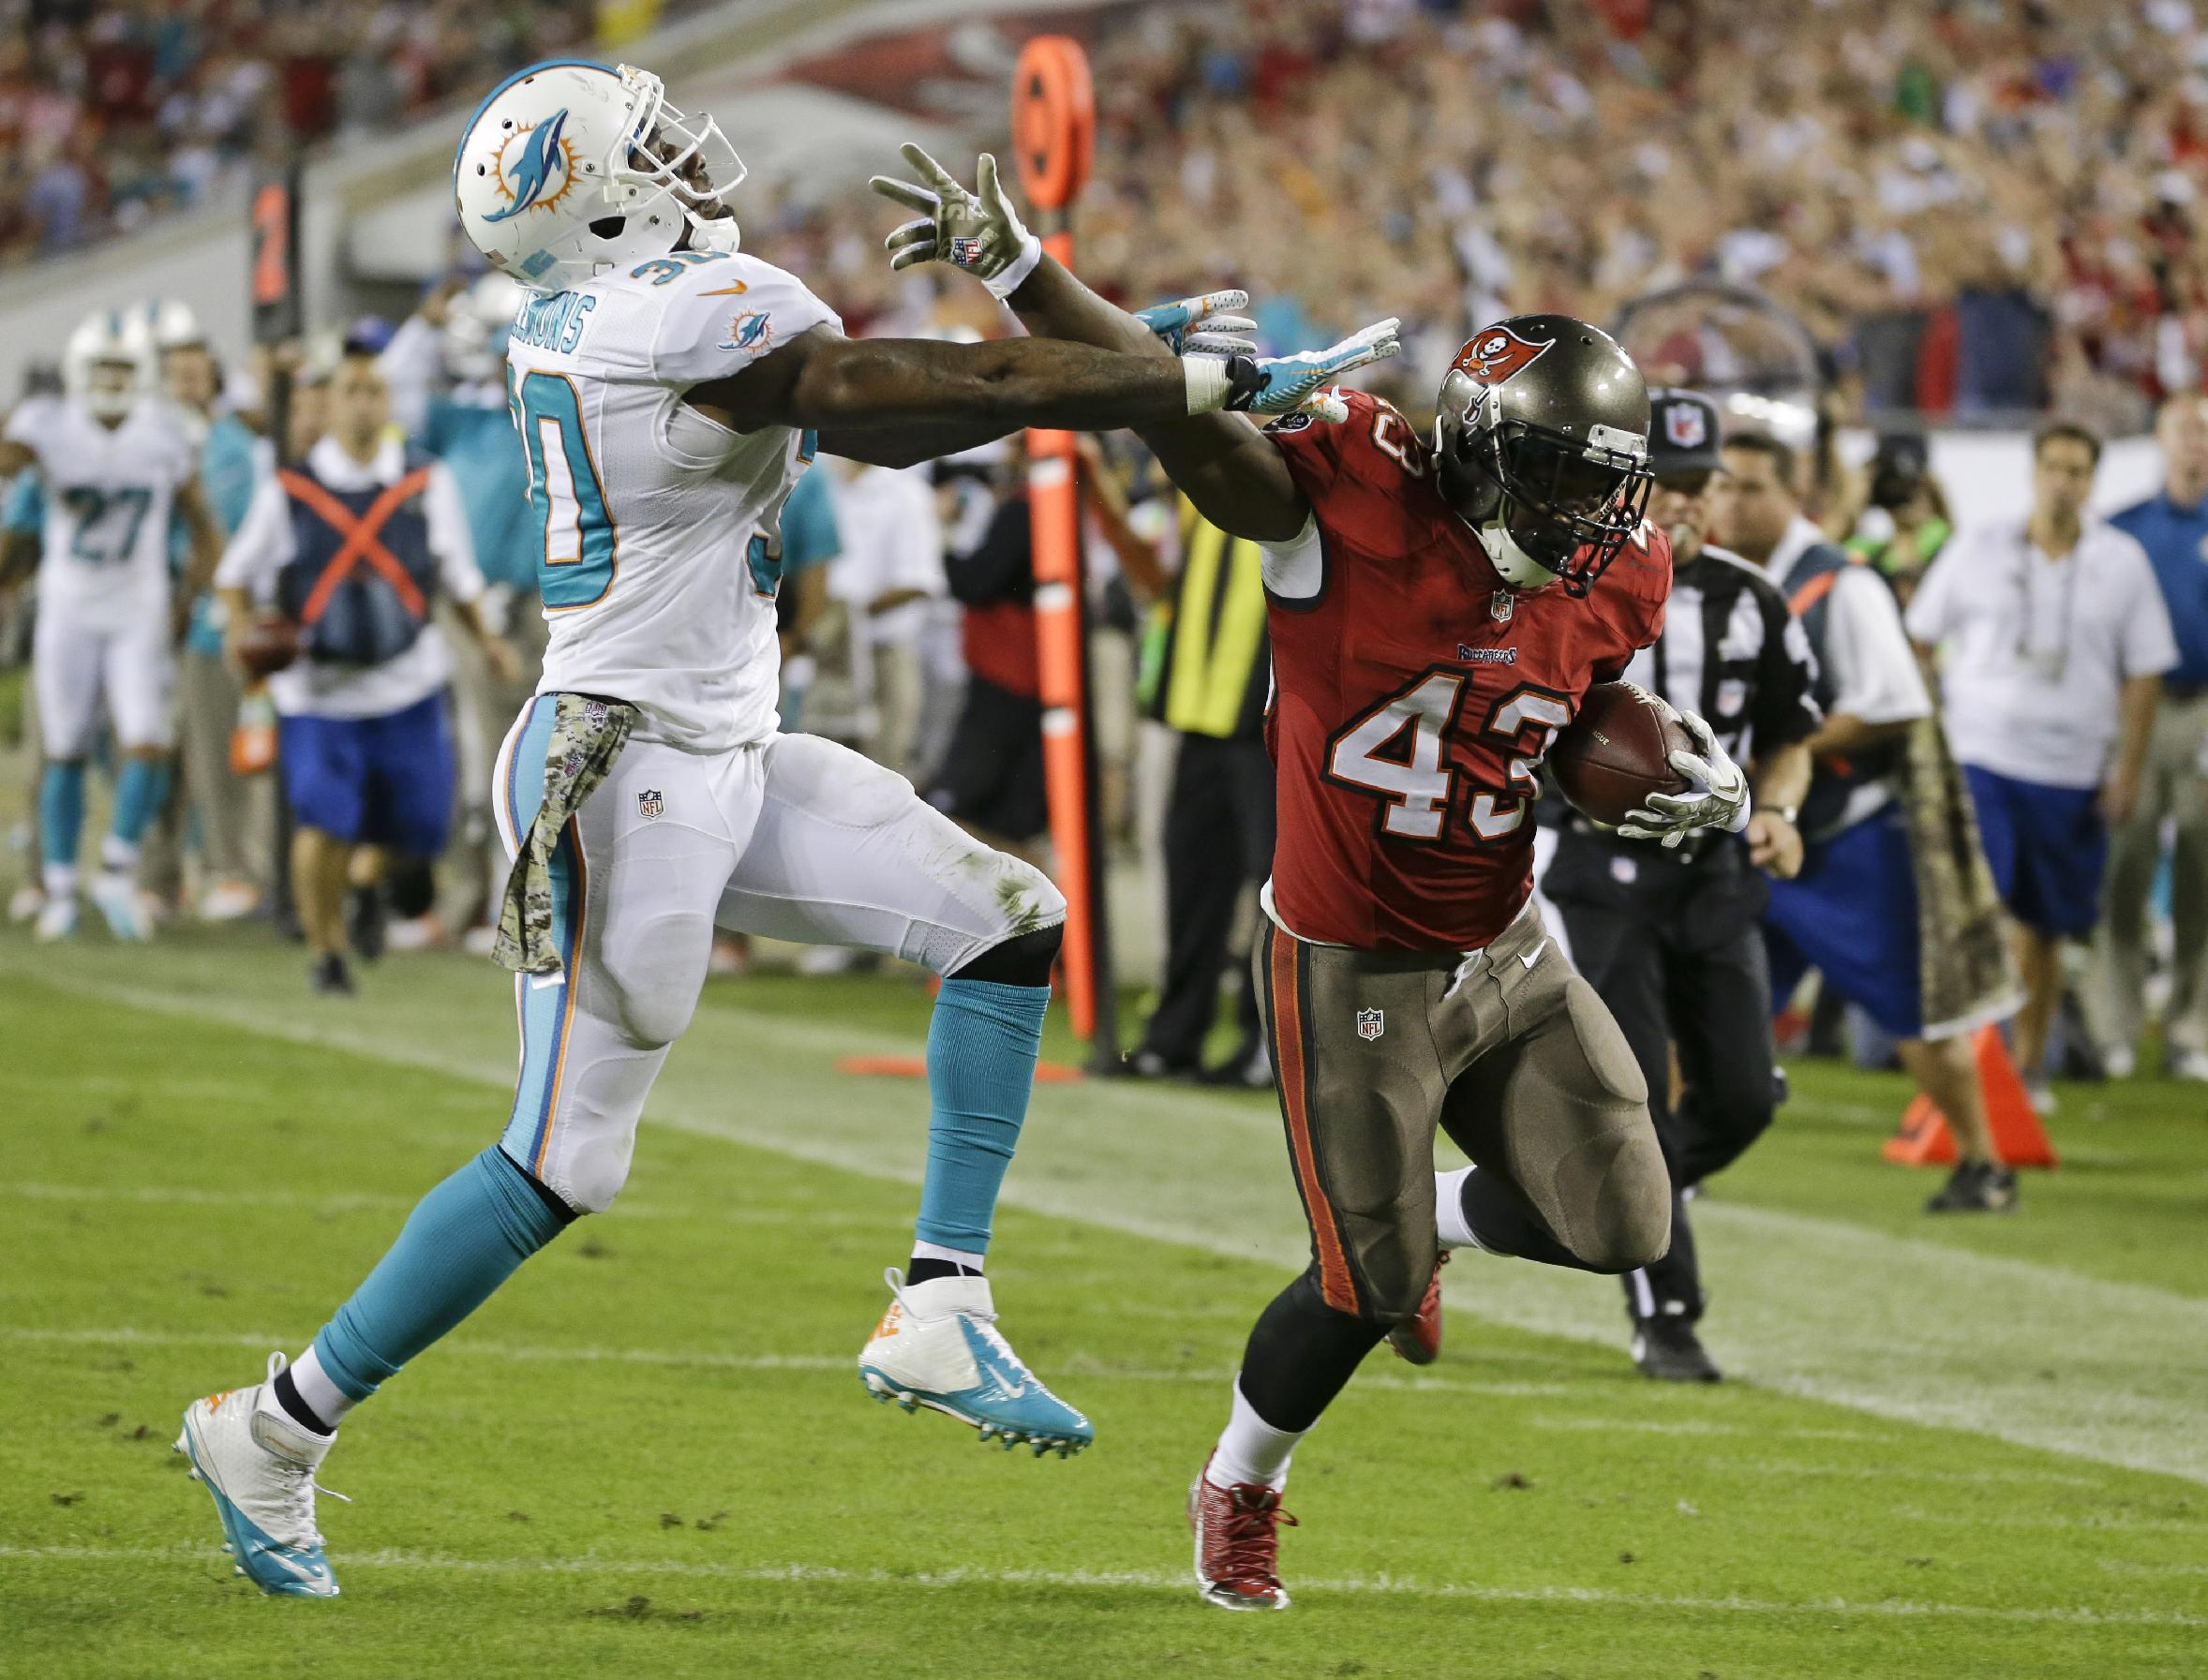 Scandal, latest loss have Dolphins fans fed up